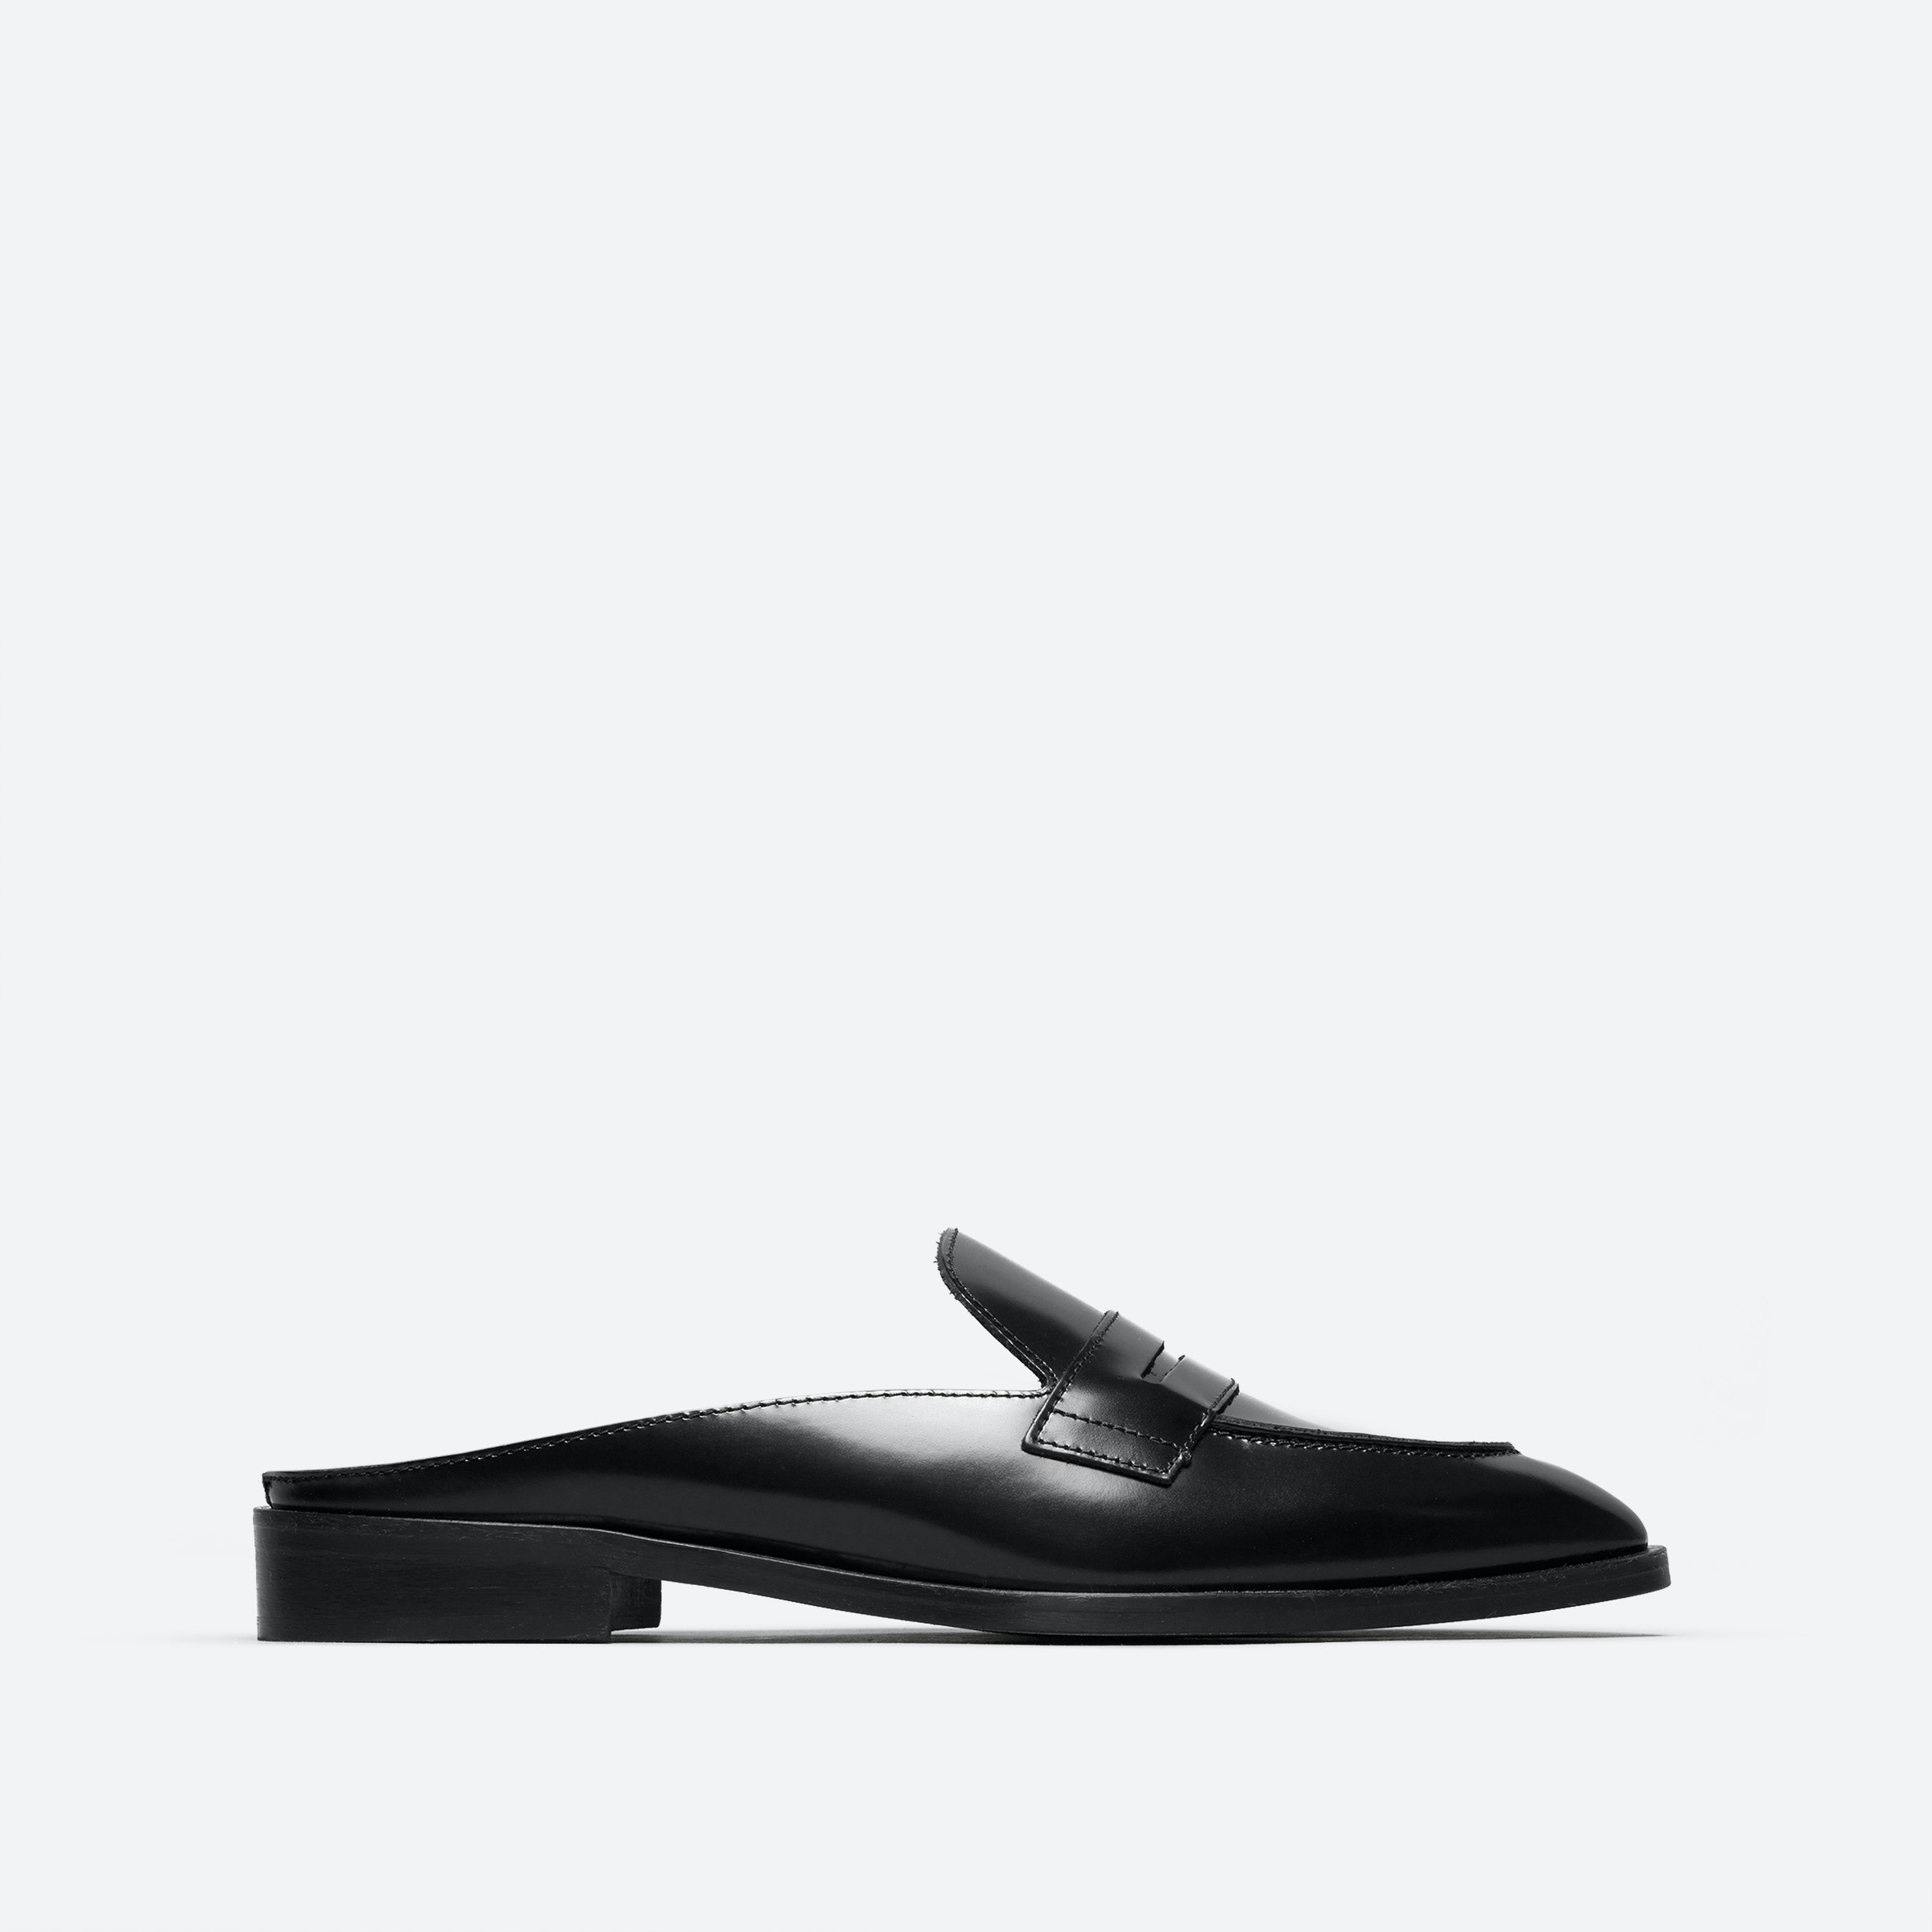 The Modern Penny Loafer Mule by Everlane